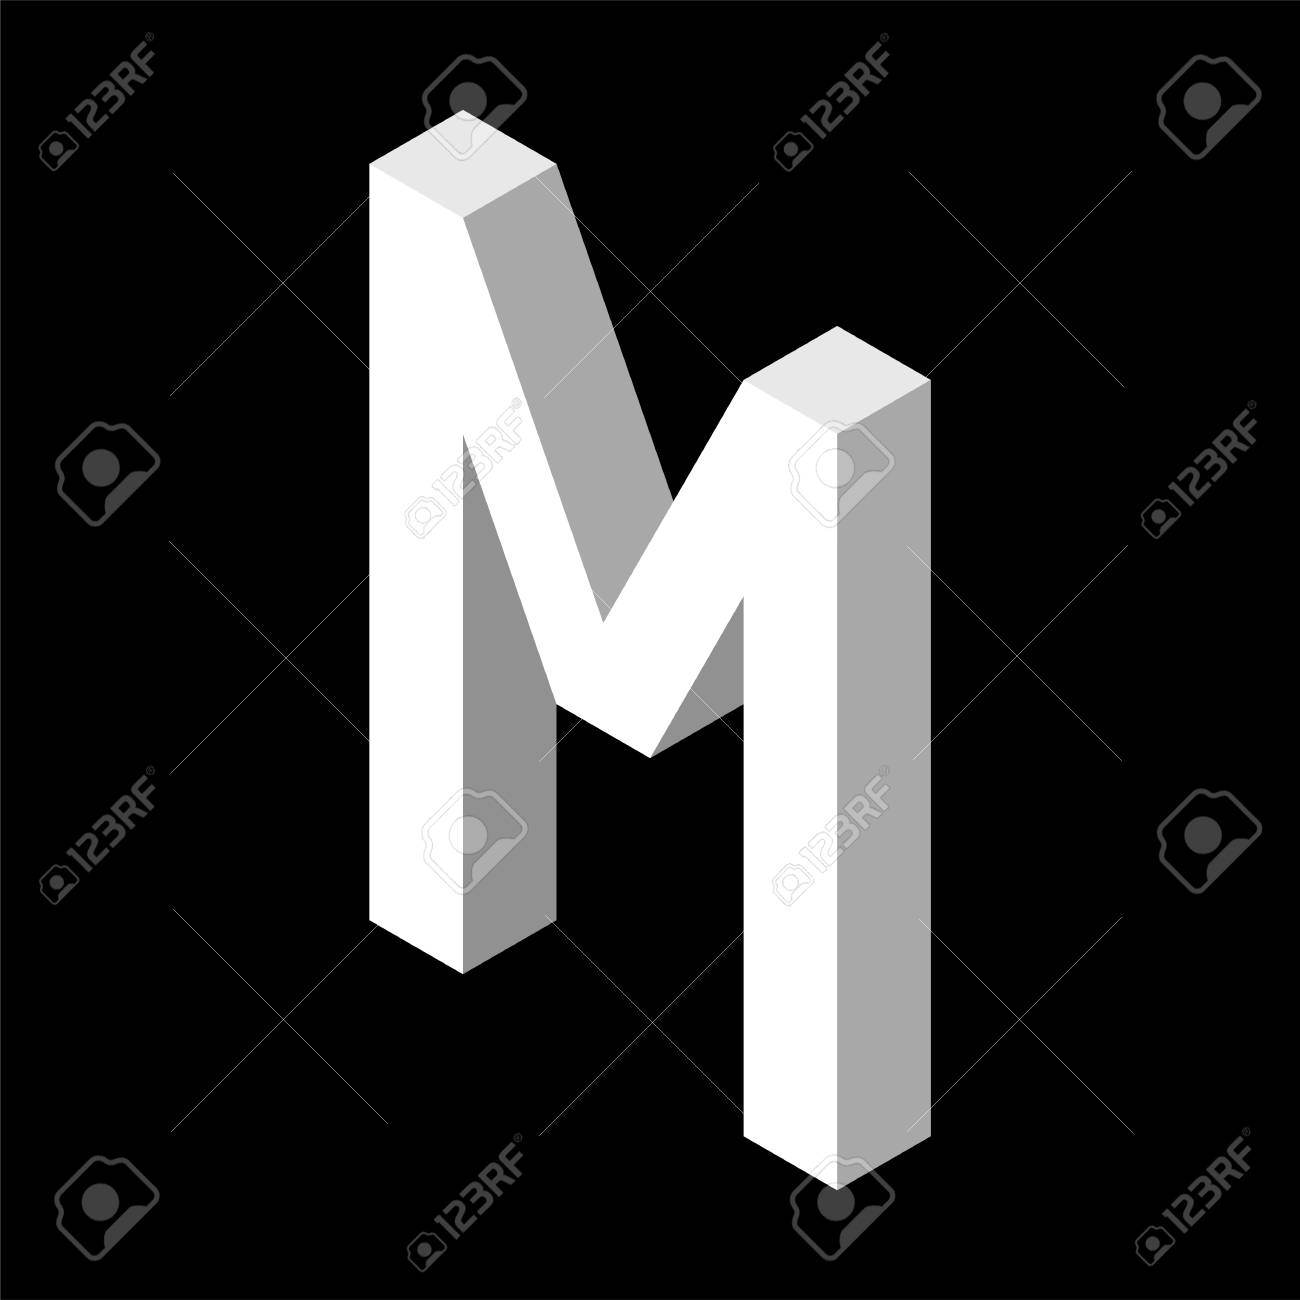 3d letter template  Stock Photo